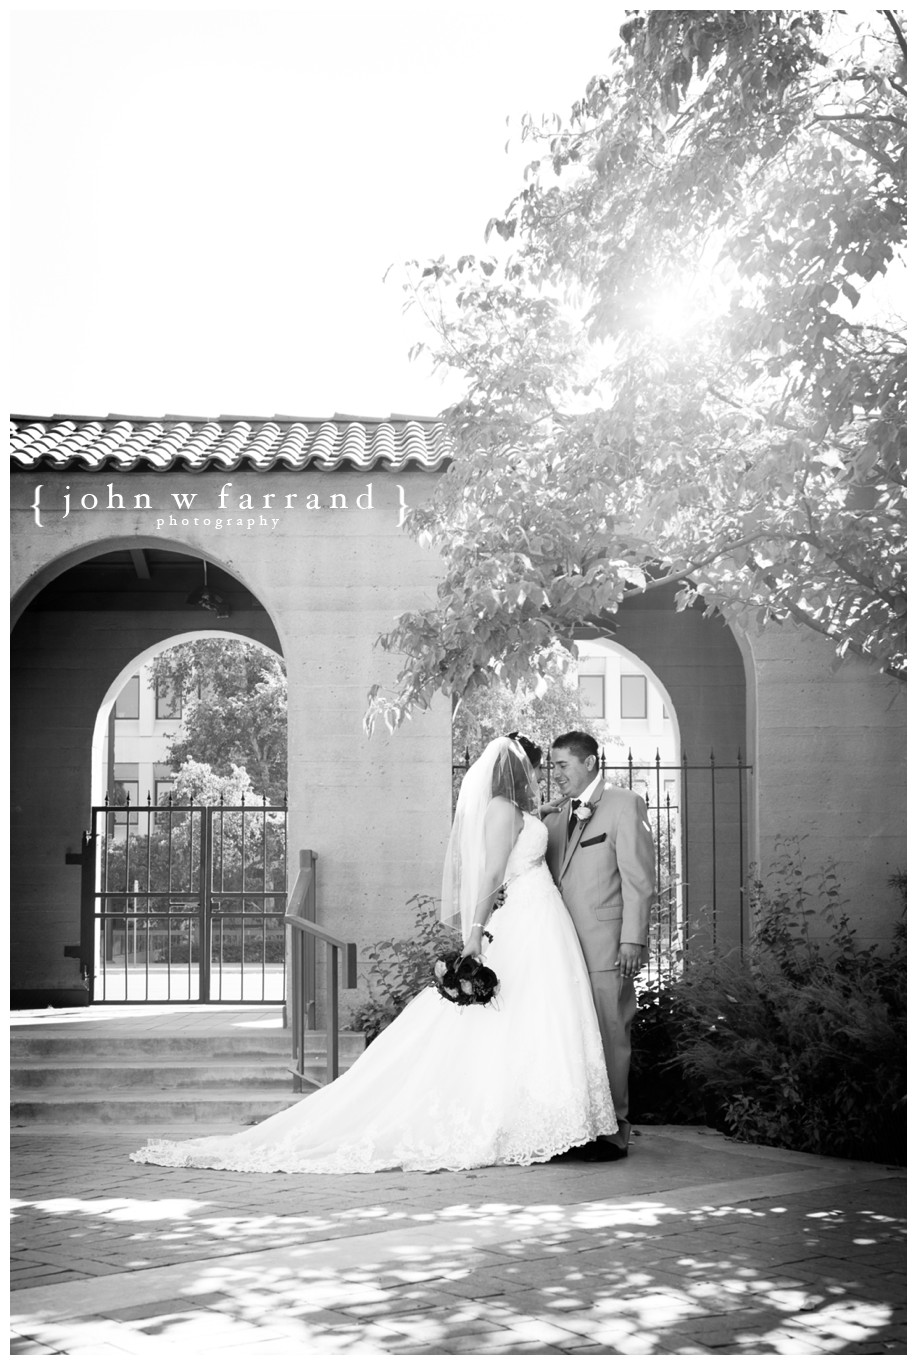 Bakersfield_Wedding_Photography_Hinojosa_009.jpg